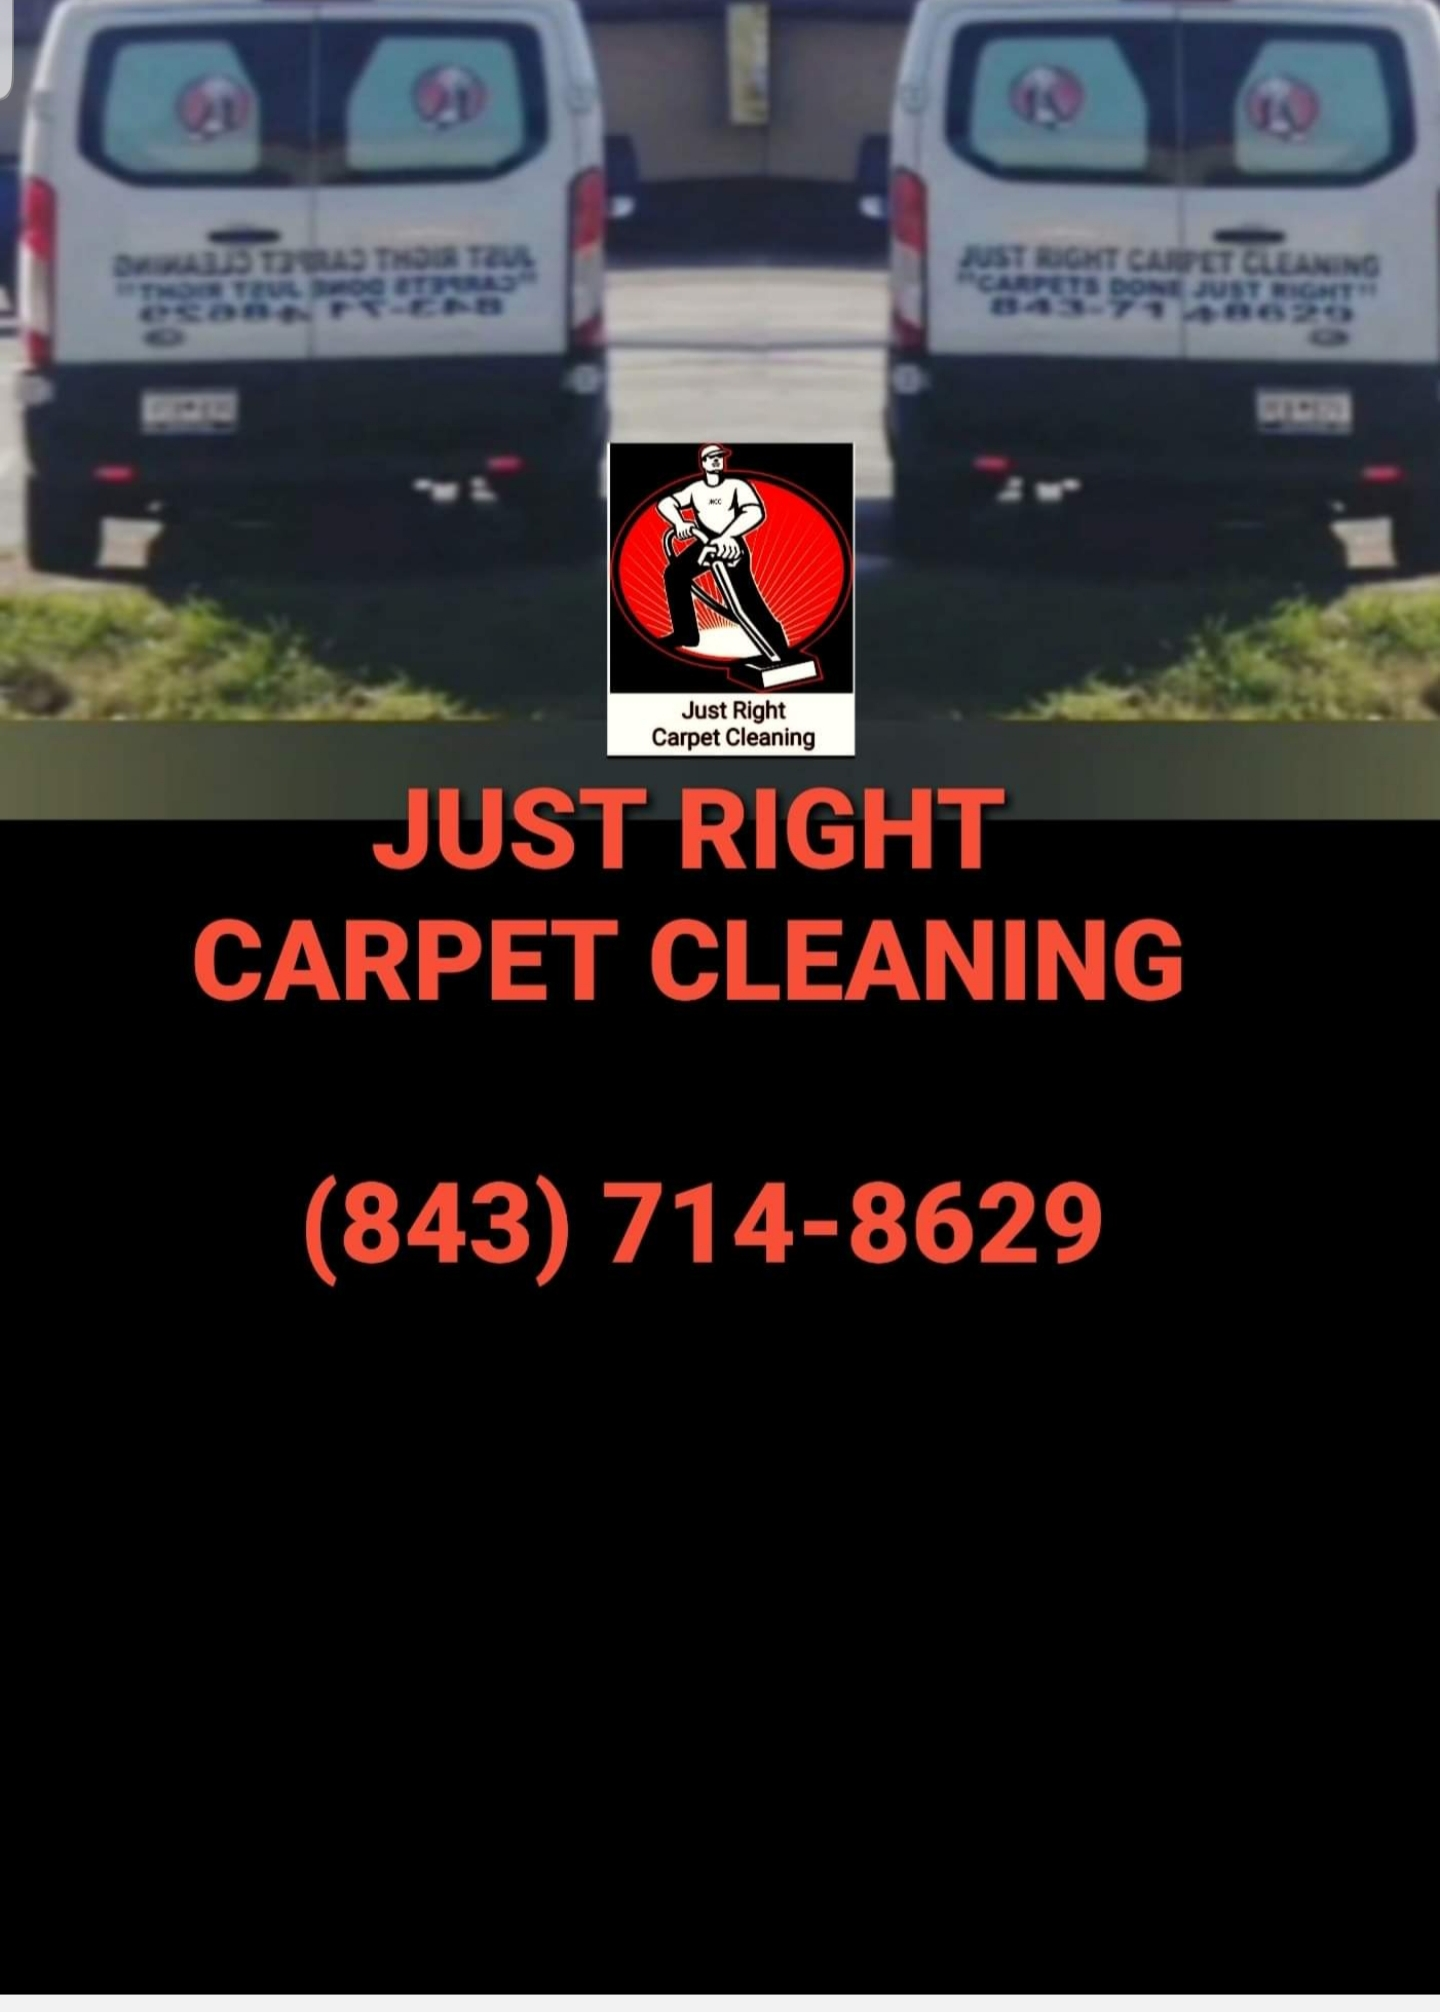 Just Right Carpet Cleaning in Goose Creek